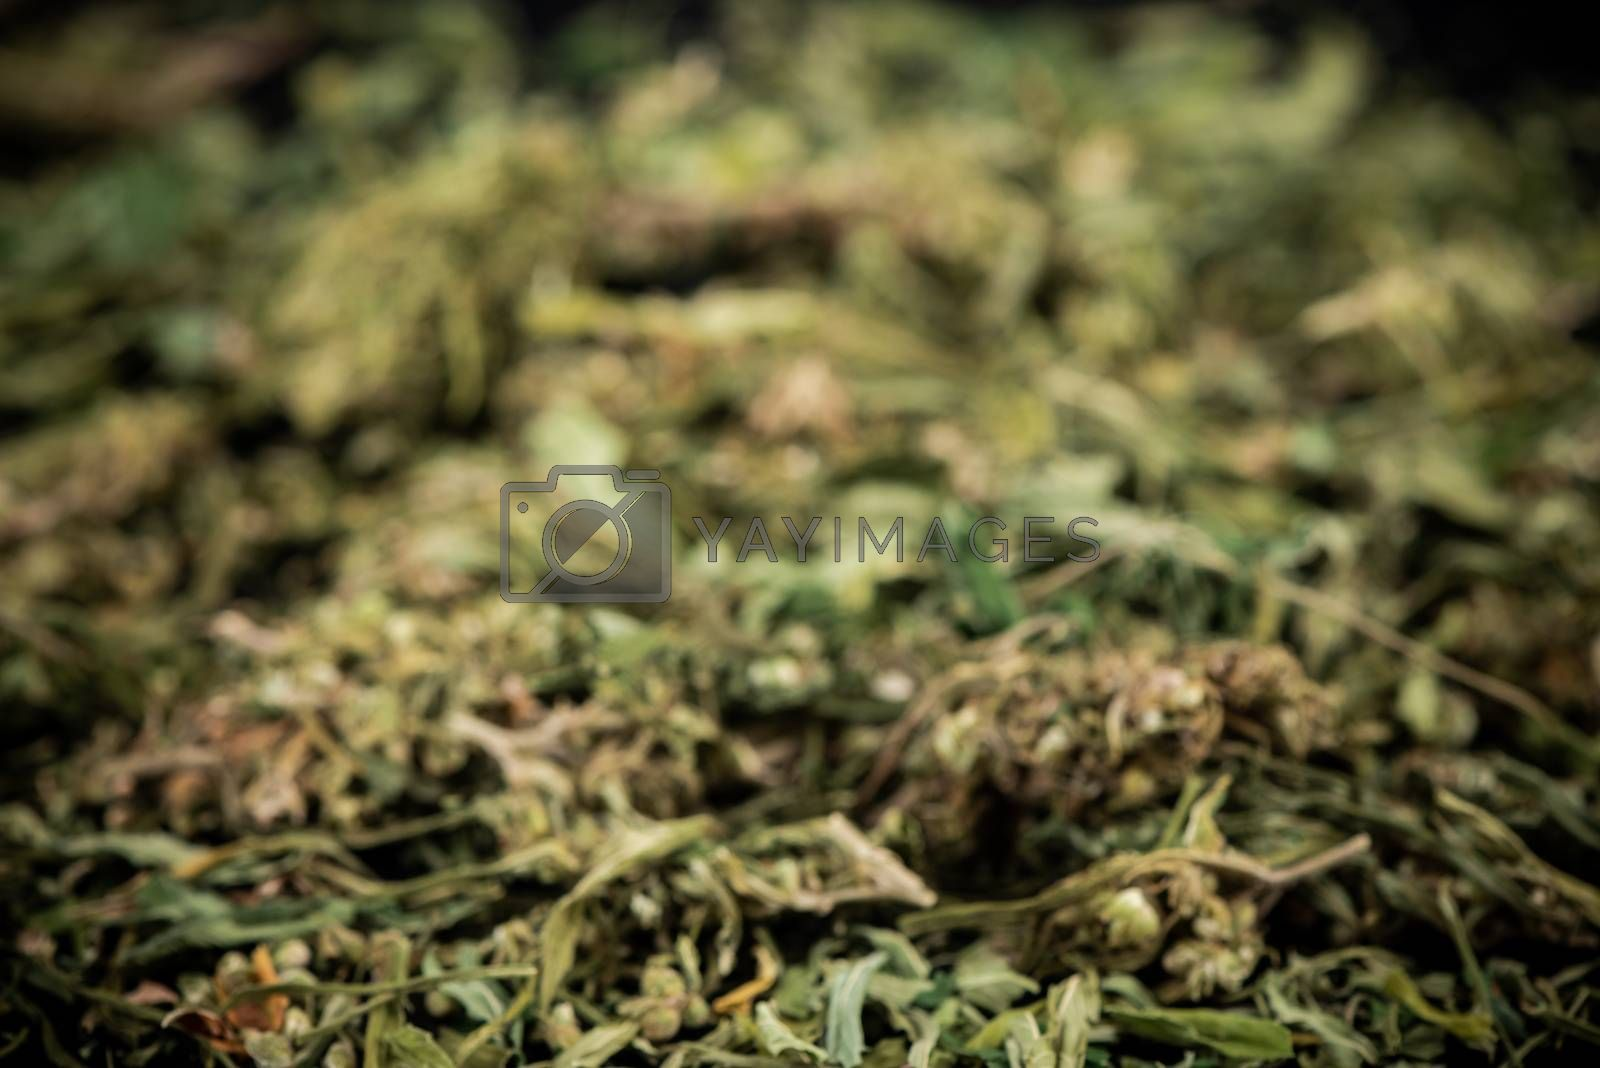 Sative Indica or Cannabis Marijuana Flower Buds Blur Bacground.